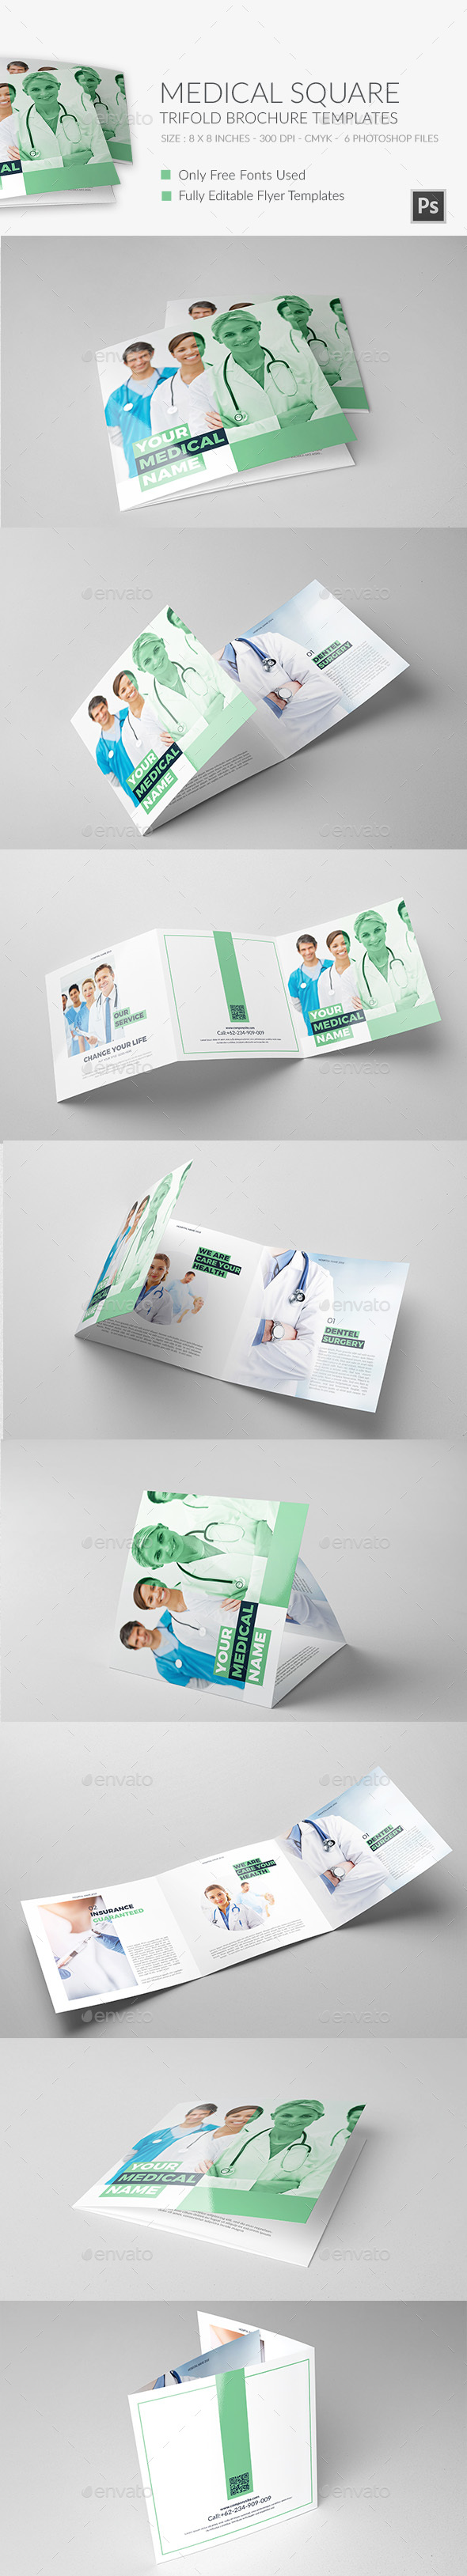 Medical Square Trifold Brochure - Brochures Print Templates